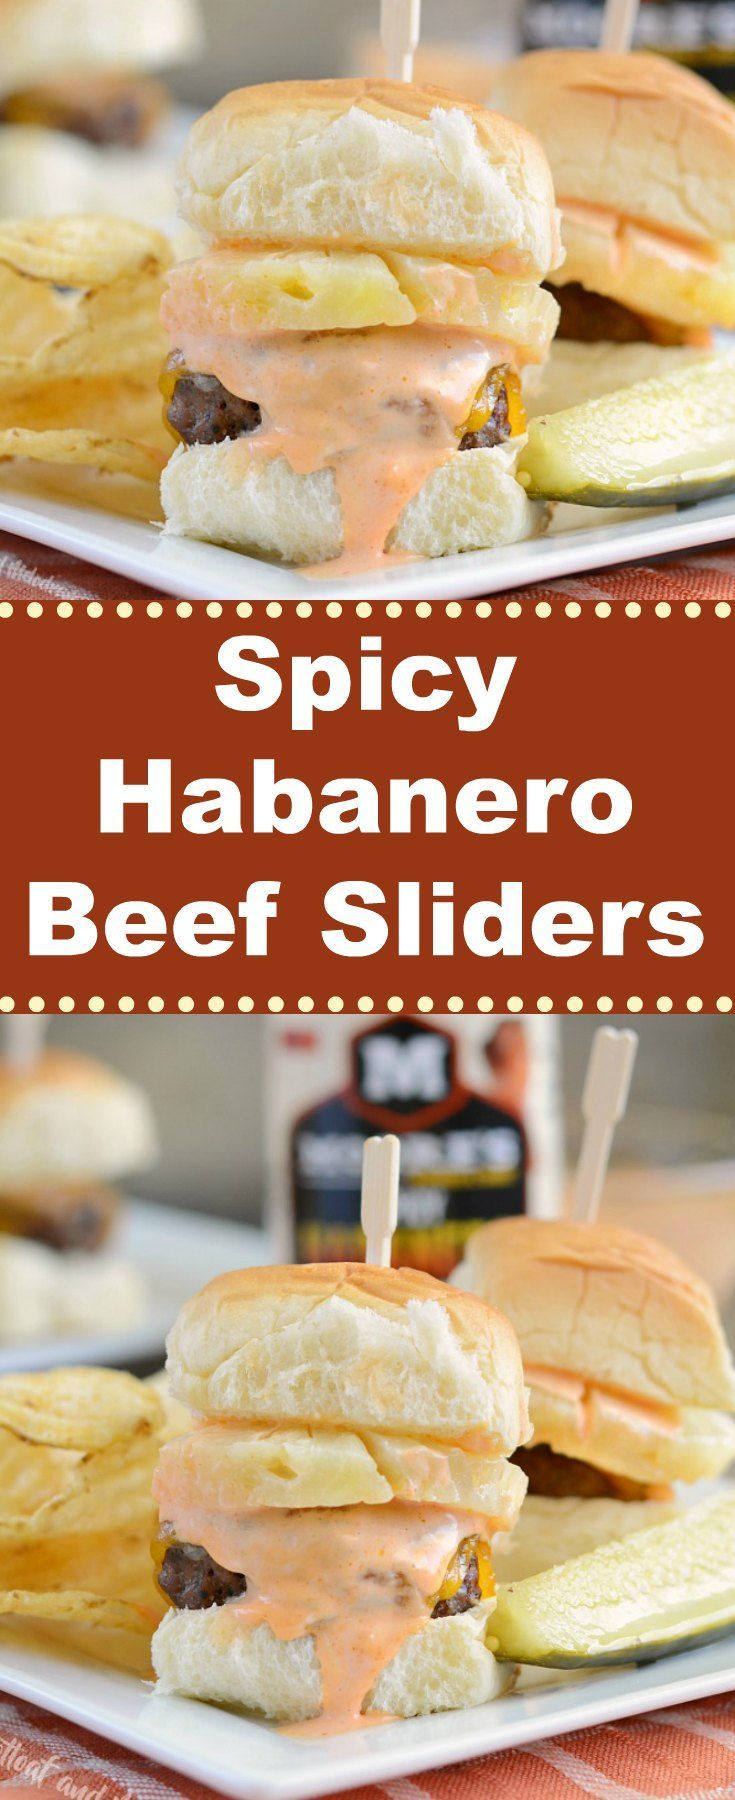 Spicy Habanero Beef Sliders -  Quick and easy ground beef sliders topped with pineapple, cheddar cheese and a creamy spicy sauce made with Spicy Habanero Sauce from Moore's Marinades. from Meatloaf and Melodrama AD #marchmadness #easydinner #appetizer #mooreflavor